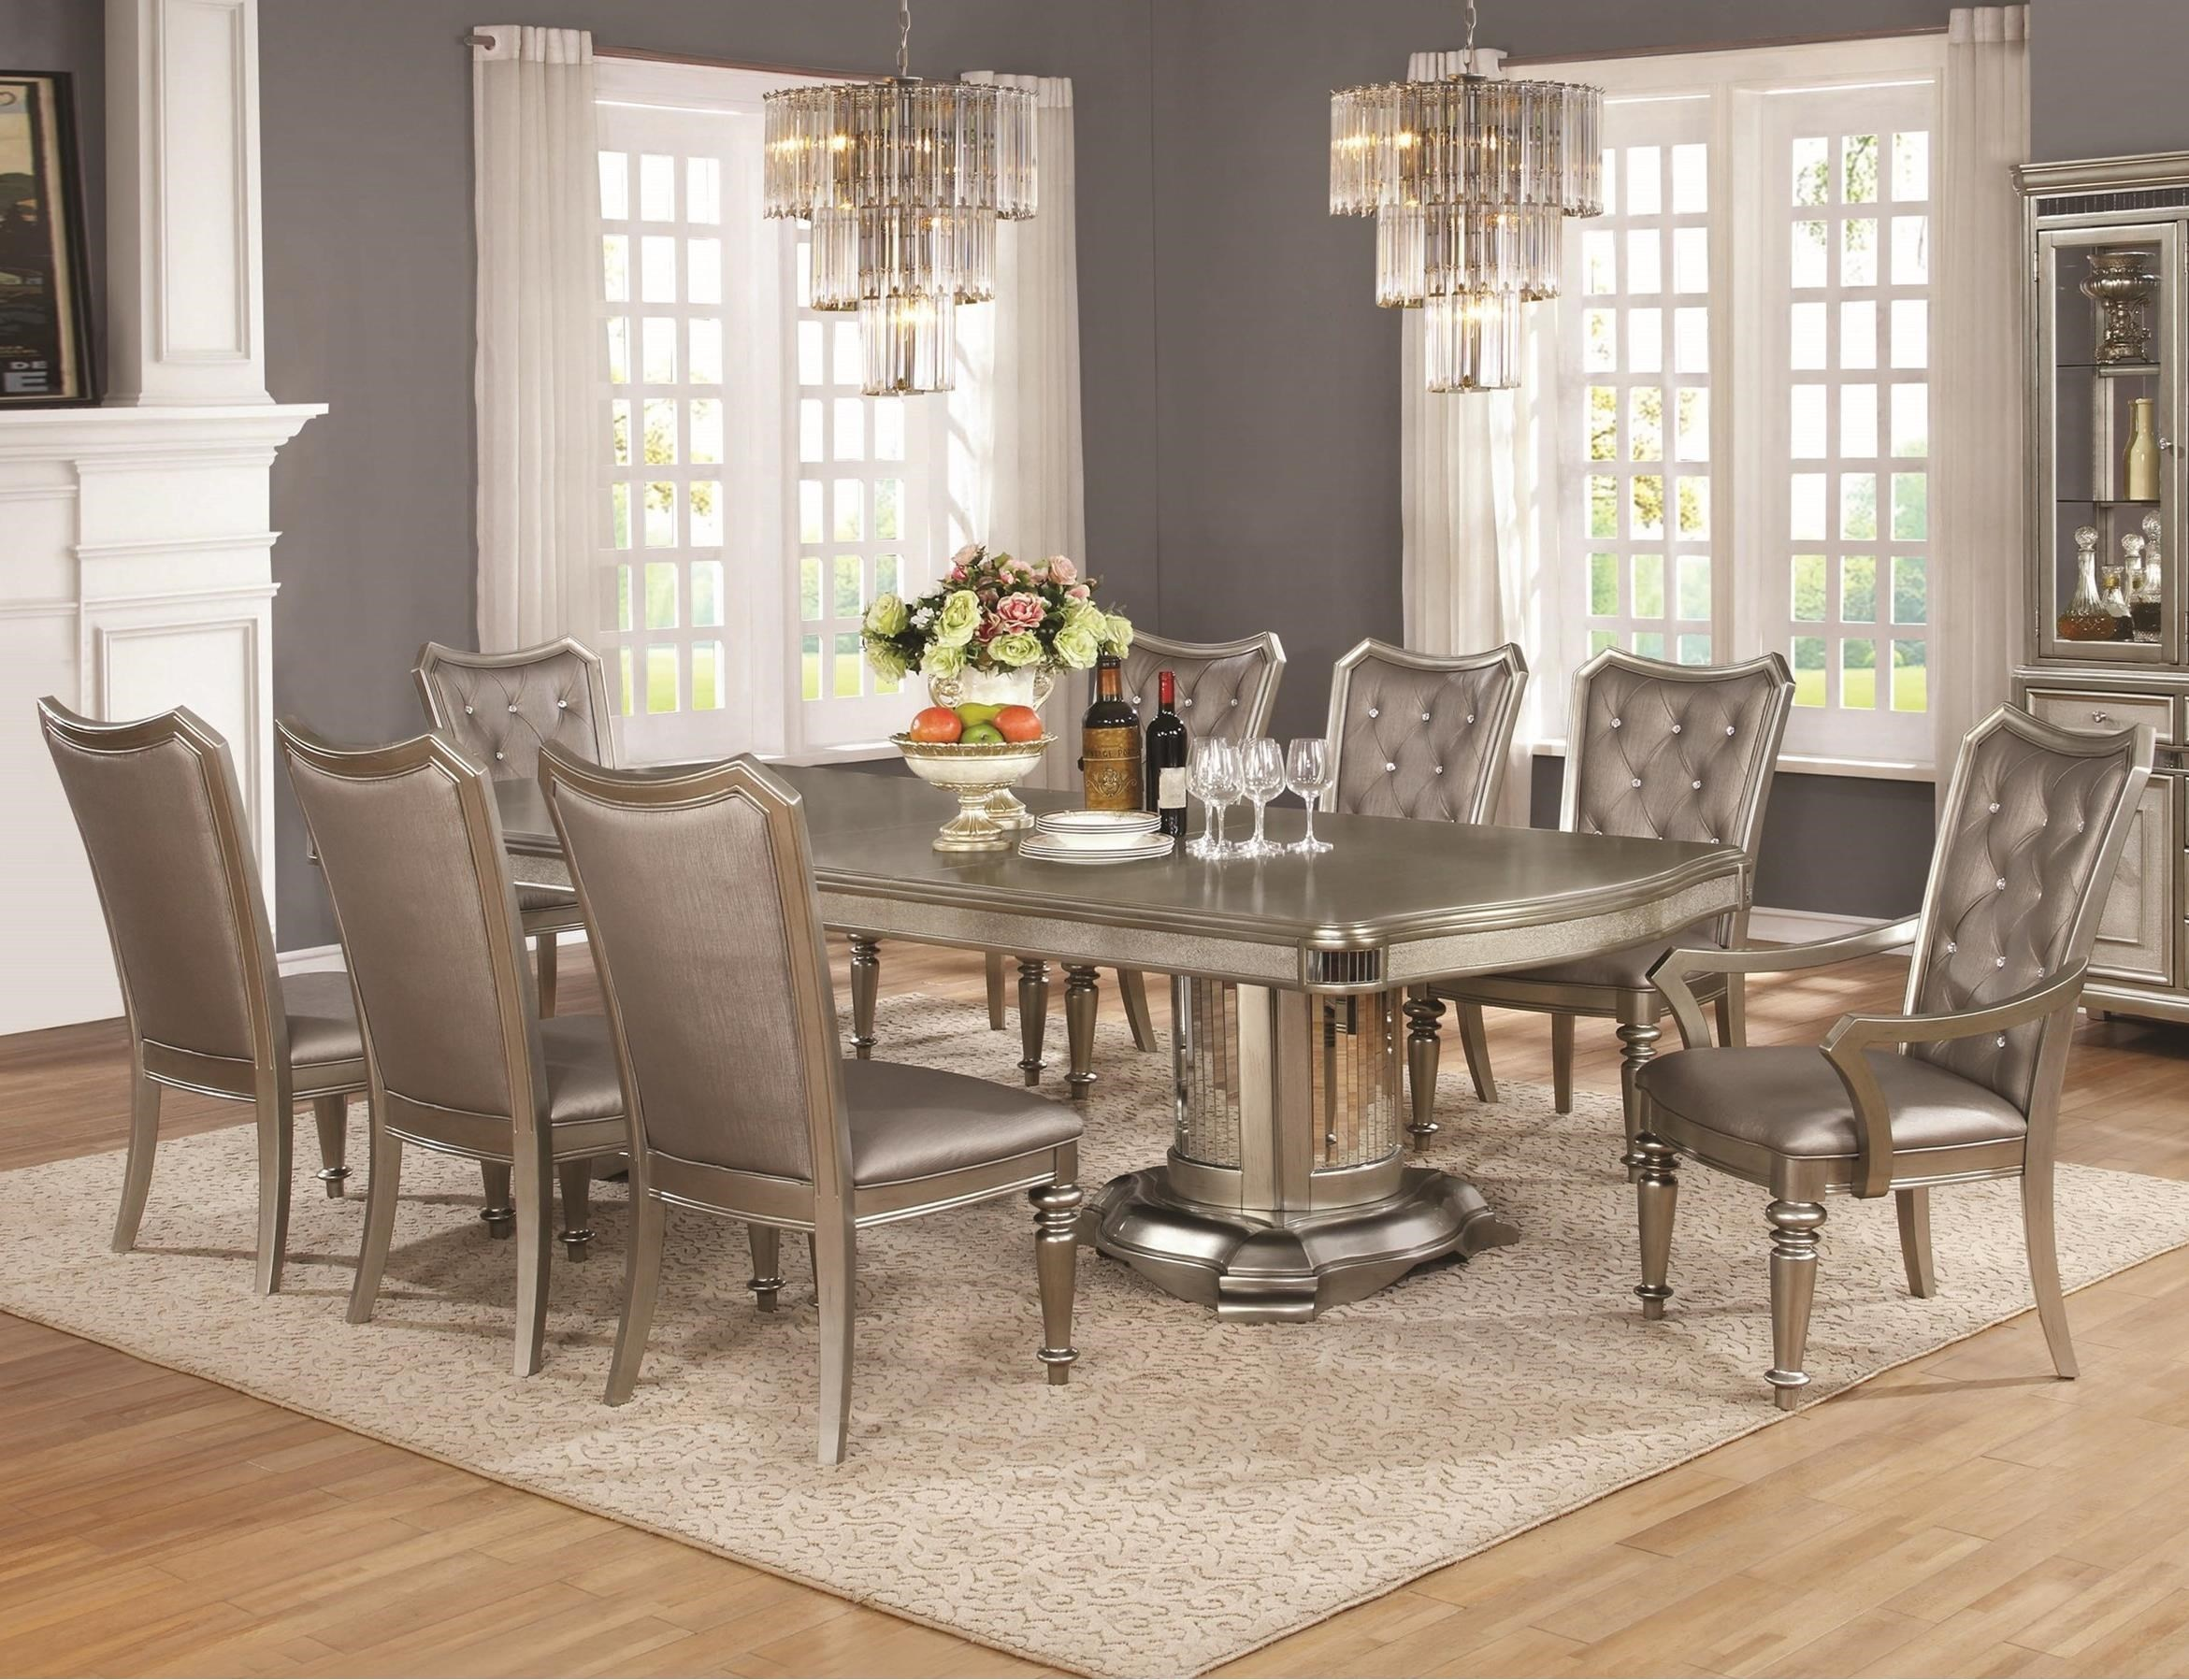 Coaster Danette 9 Piece Table And Chair Set With Leaf